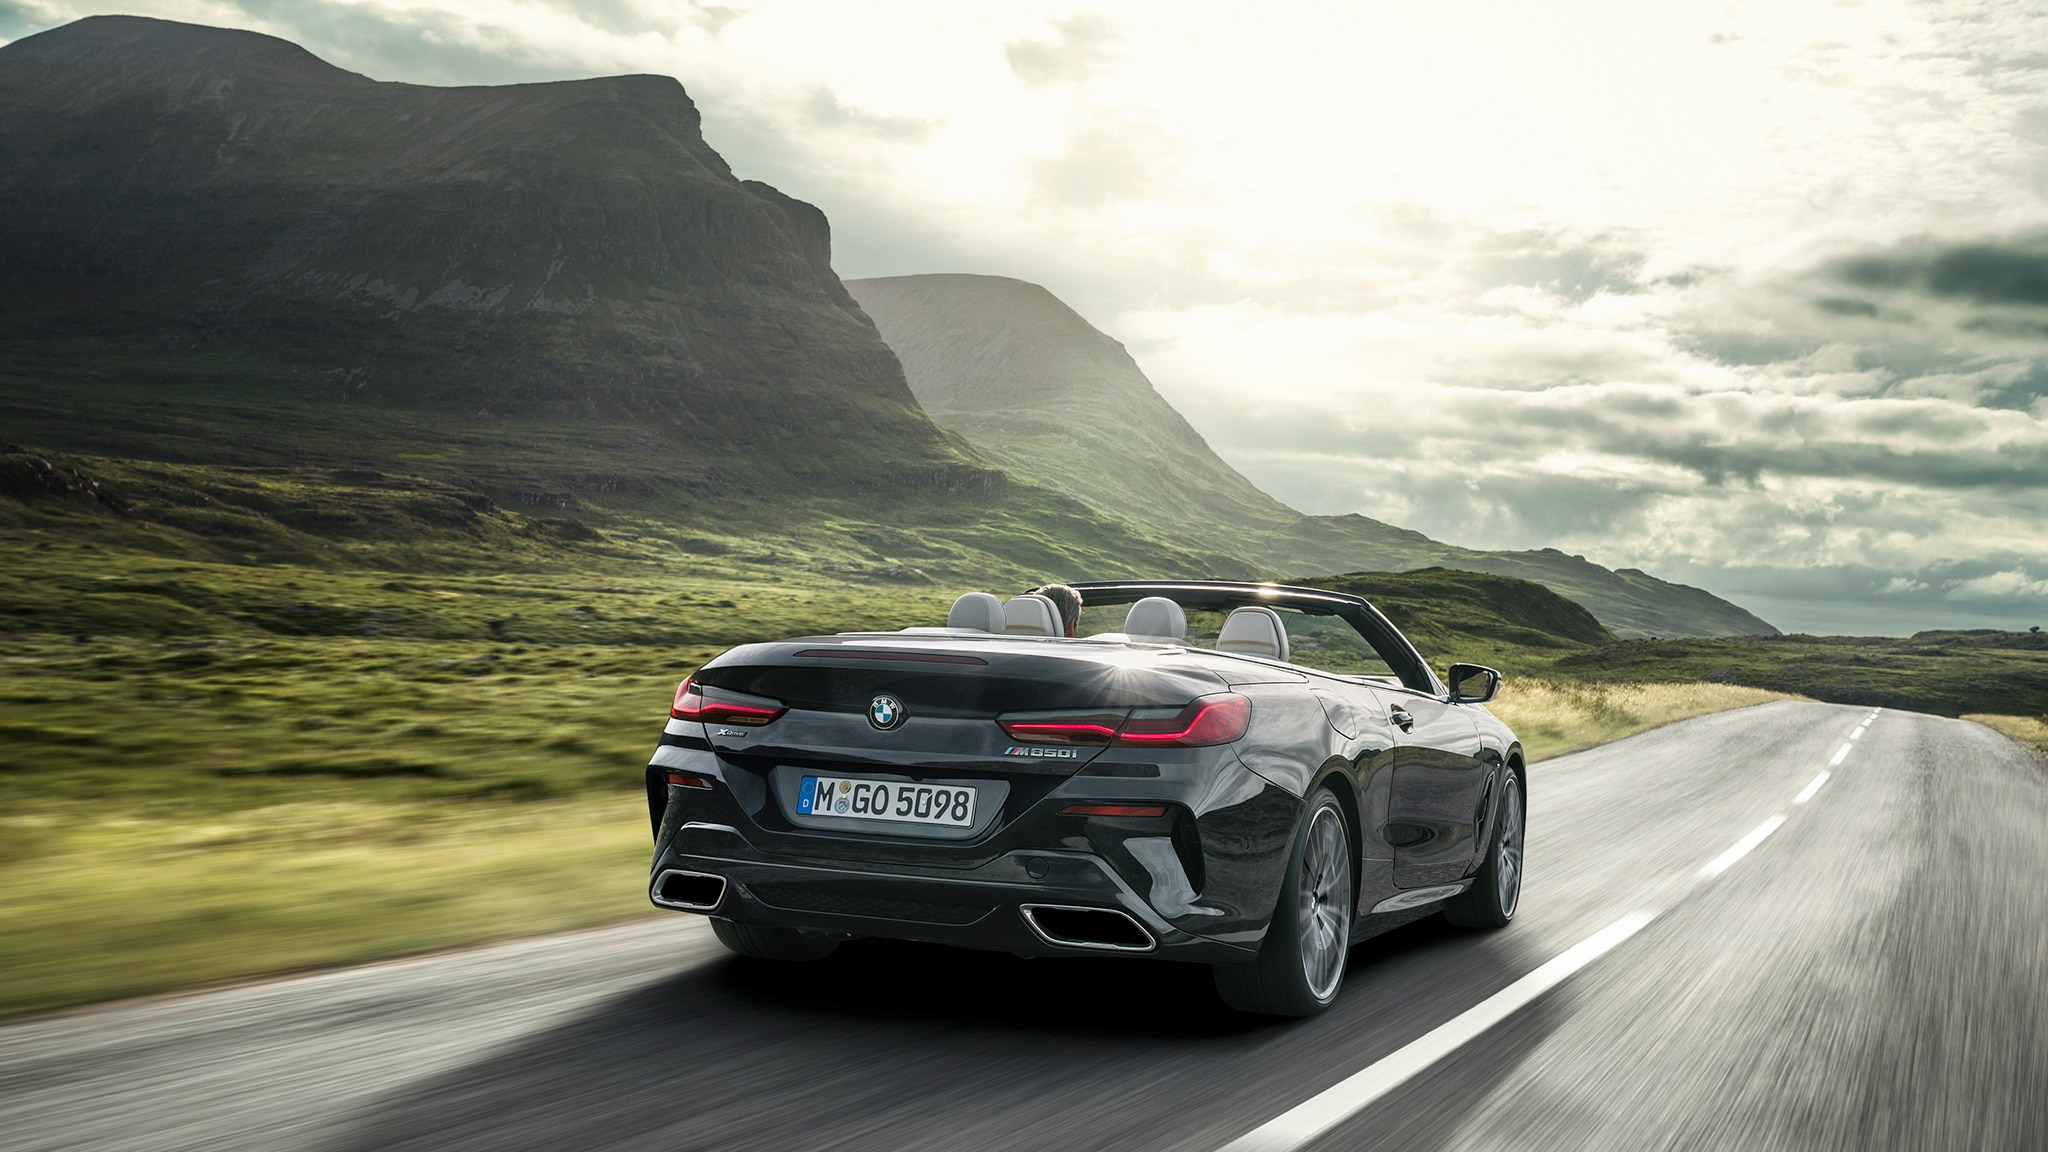 2019 BMW M850i Convertible Rear Motion Mountains And Sky